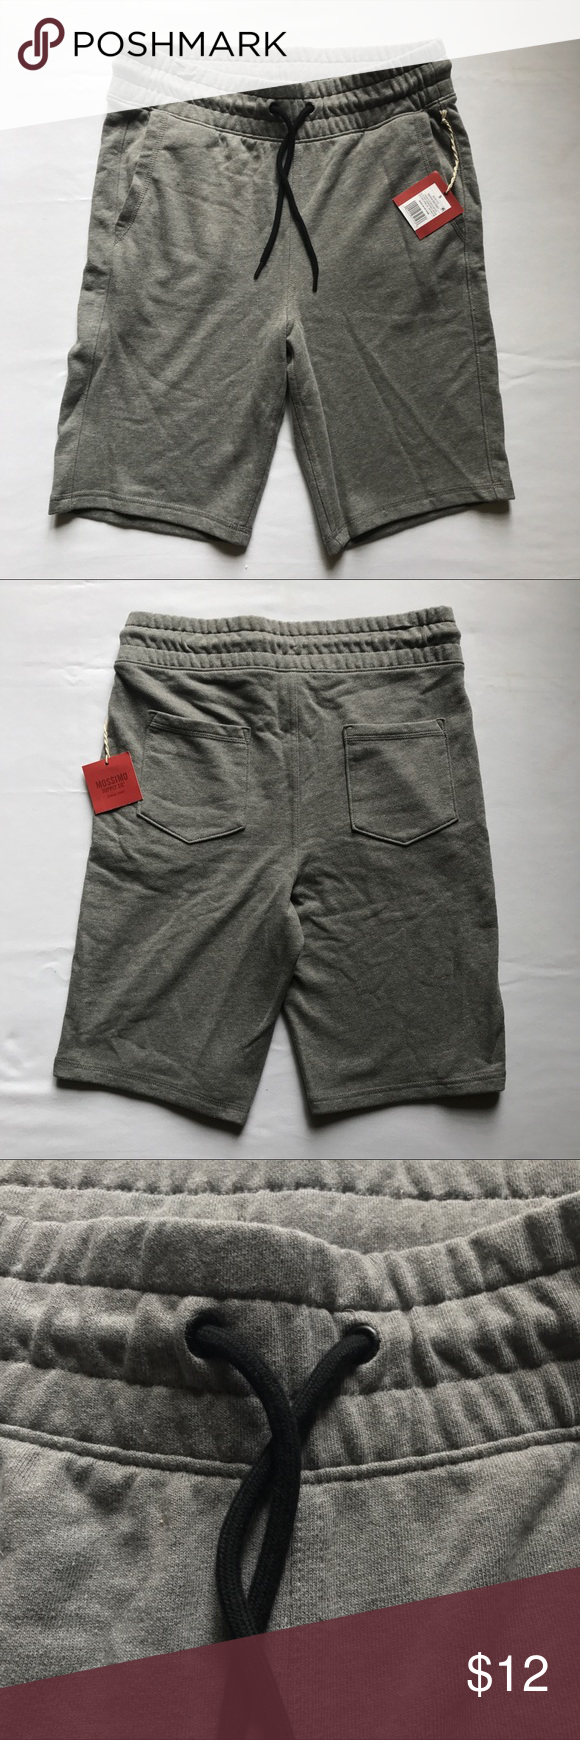 """Men Mossimo Supply Co Gray Knit Drawstring Shorts Men's Mossimo Supply Co. grey drawstring waist shorts. Great for walking or working out. Soft 60% cotton 40% Polyester. 2 Side front pockets and 2 backside pockets.  Waist: 32""""-34"""" Inseam: 10"""" Length: 21"""" Mossimo Supply Co. Shorts Athletic"""